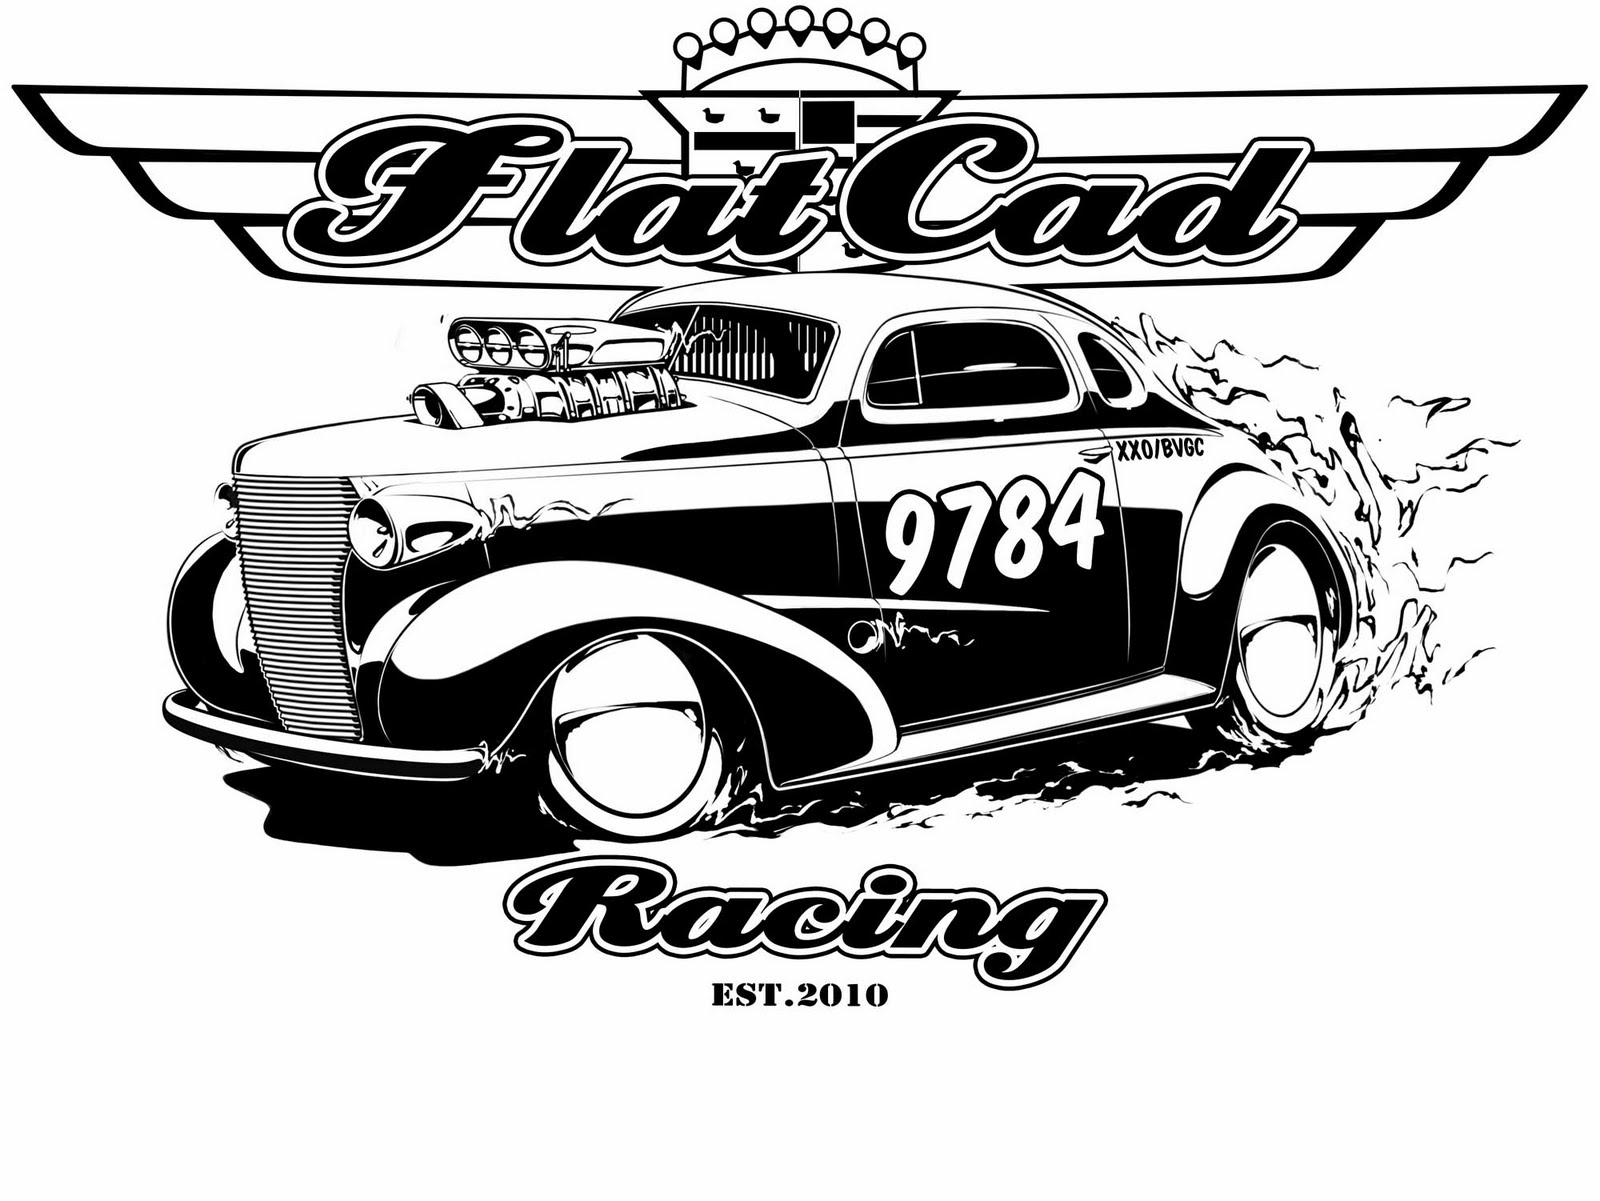 29859 316 Vectors HOT RODS furthermore Race racing logo hot rod rods g also 1927 Ford Model T Diagrams as well Flathead Engine Kits also Color. on 1930 ford street rod